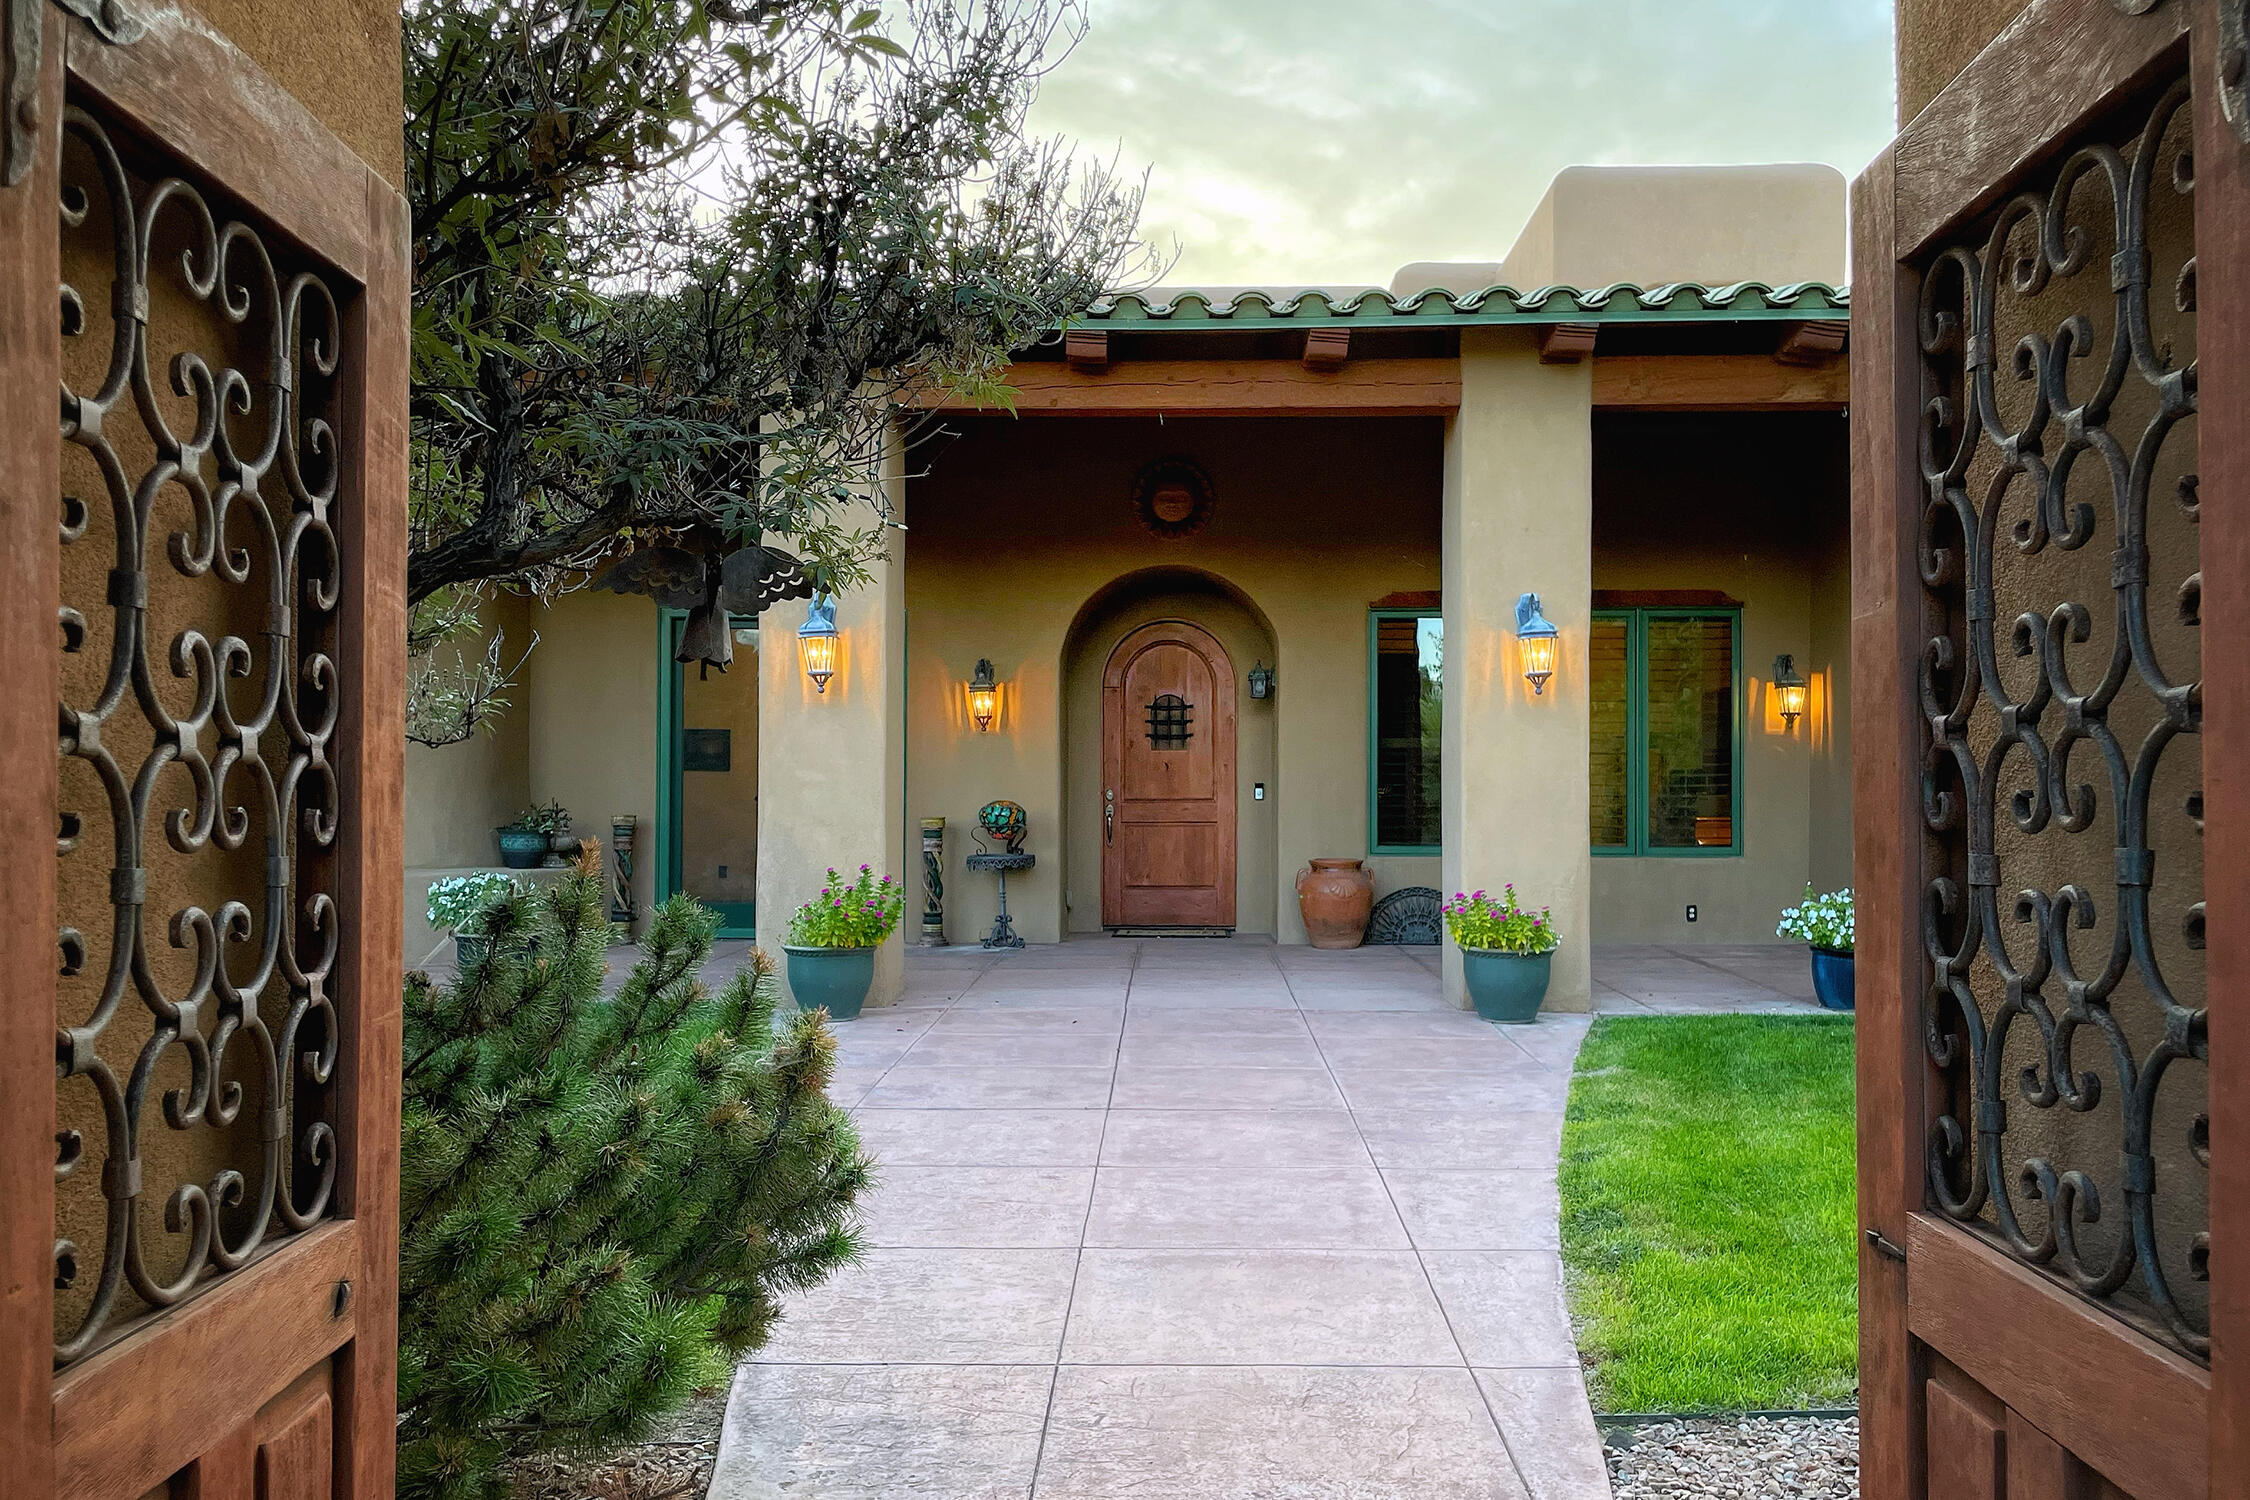 Located in the pristine Los Poblanos Orchards gated community this 5100 sq. ft. home, with additional 1090 sq. ft. 4 car garage, 1308 sq. ft. pool house, and so much more, offers ample space to accommodate all lifestyles. Custom finishes throughout the home, including Venetian plastered walls, newer roof, granite countertops, Wolf kitchen appliances, custom cabinetry, and custom solid surface flooring. Grand entry and sensible floor plan with tall ceilings throughout.  Spacious 1.2 ac lot with plenty of parking and space. Entertain year-round with the outdoor grill, heated pool, hot tub and a custom pool house with panoramic sliding glass doors, outdoor fireplace features, portals, and an outdoor kitchen/bar. An added perk is the separate irrigation well to maintain the lush landscape.